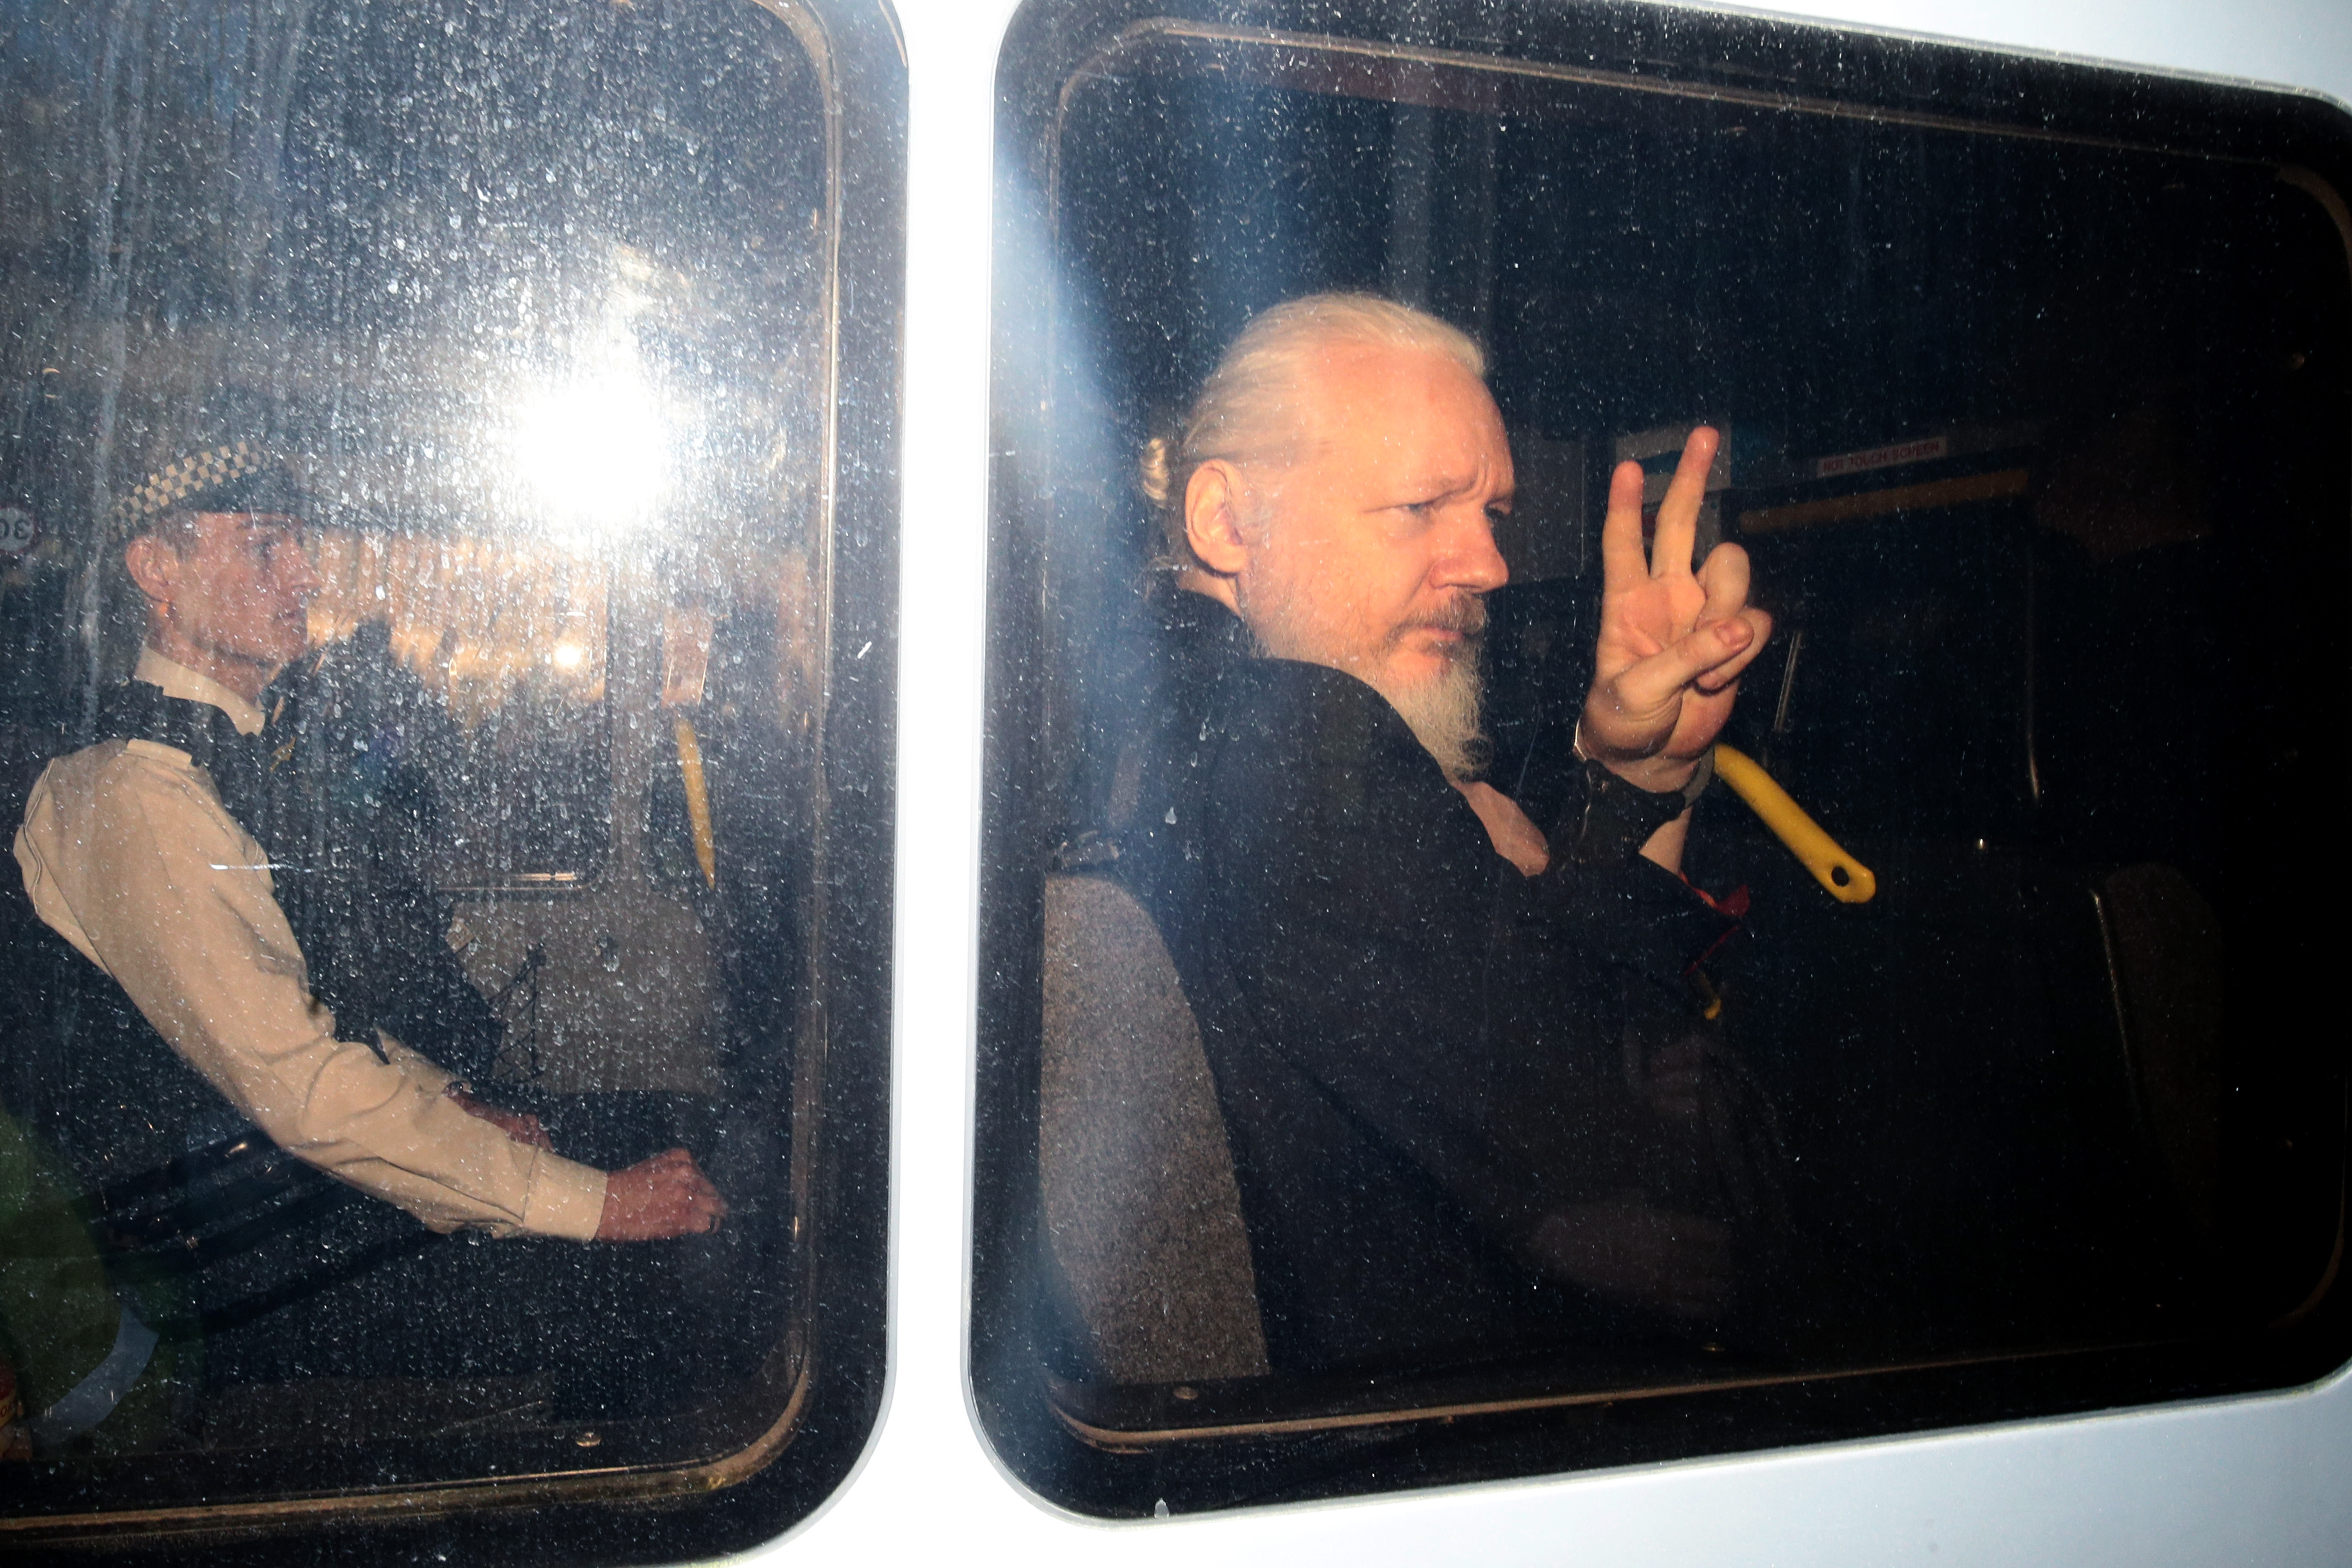 Julian Assange gestures to the media from a police vehicle on his arrival at Westminster Magistrates court on April 11, 2019 in London, England. (Photo by Jack Taylor/Getty Images)